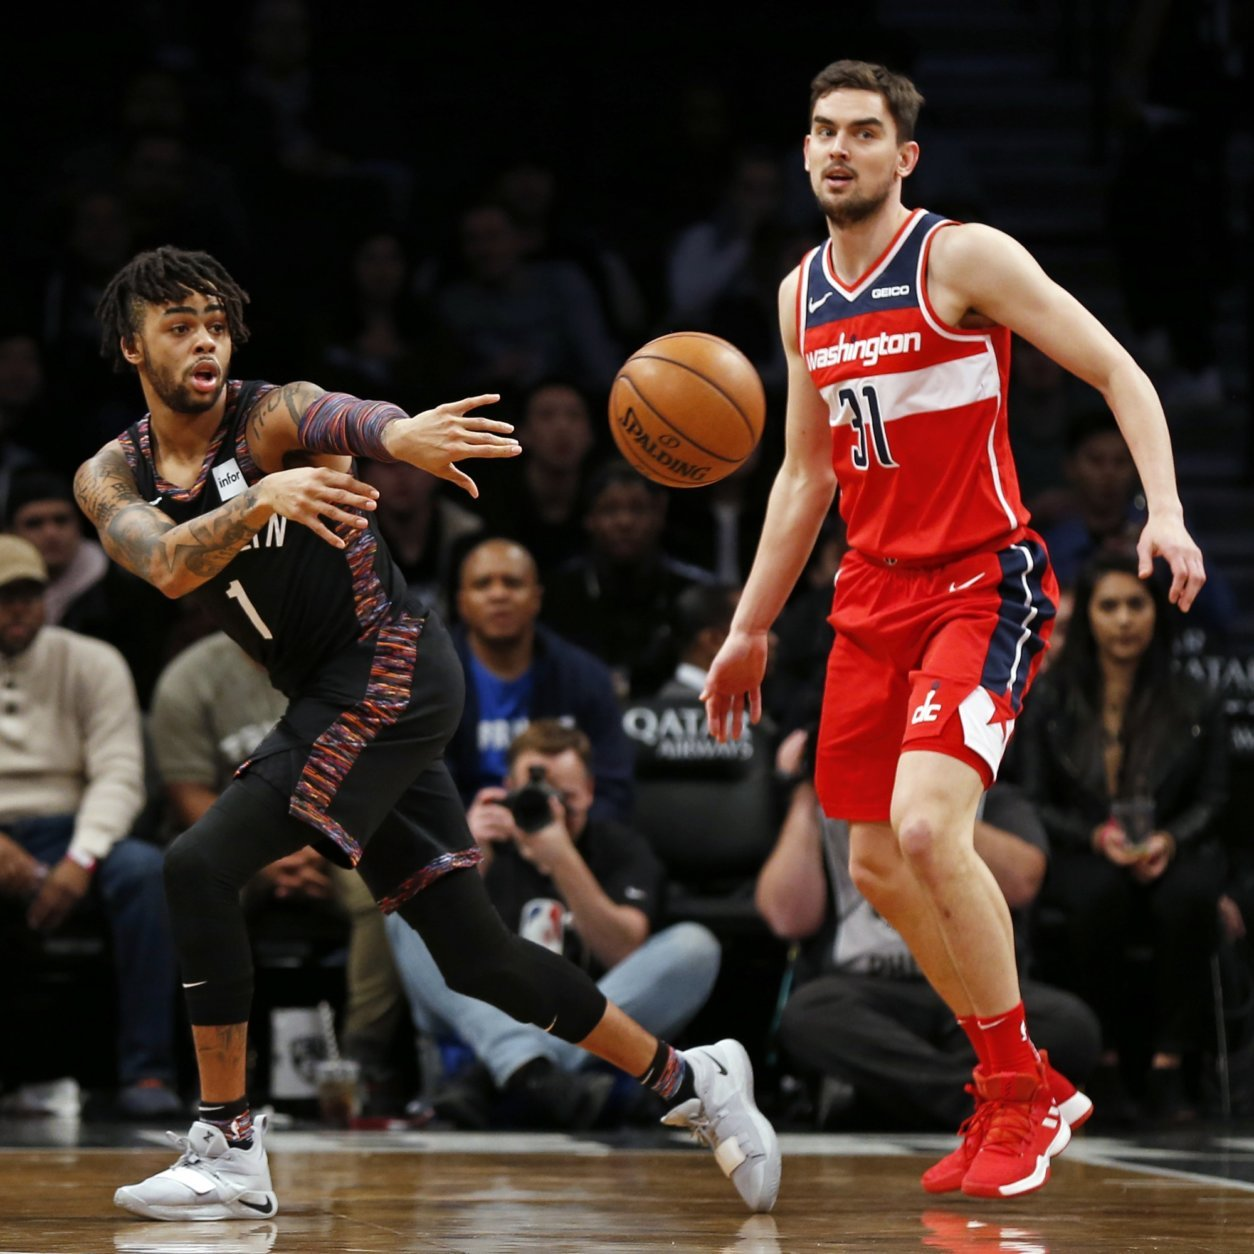 Brooklyn Nets guard D'Angelo Russell (1) passes around Washington Wizards guard Tomas Satoransky (31) during the first half of an NBA basketball game Friday, Dec. 14, 2018, in New York. (AP Photo/Adam Hunger)